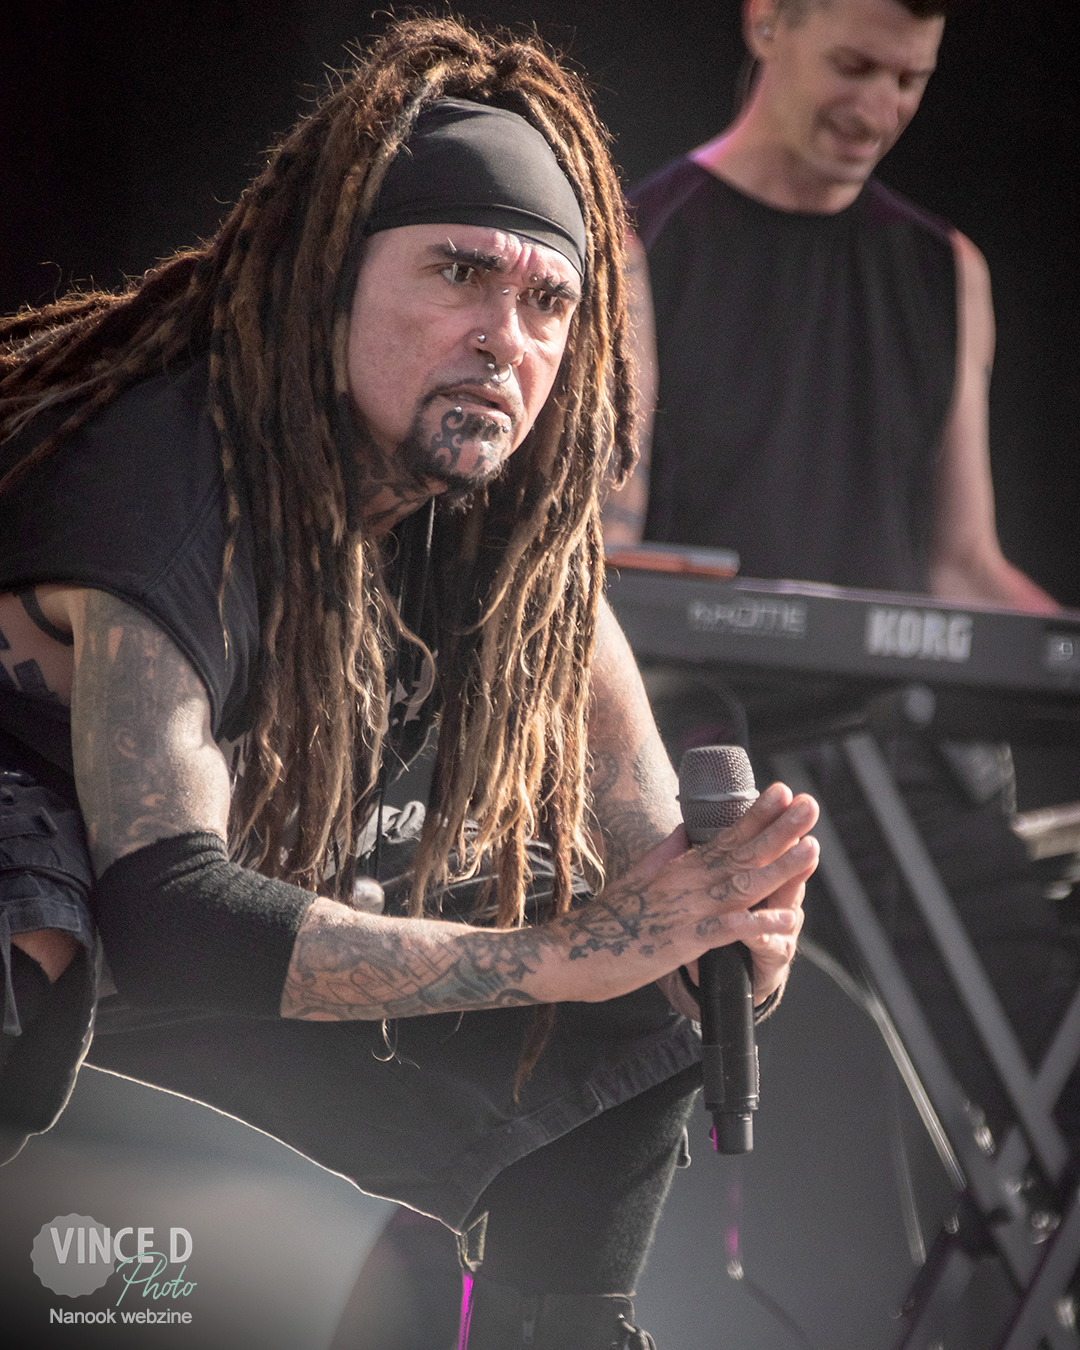 nanook-webzine-festival-hellfest-photos-concerts-report-Driancourt_vincedphoto_KNOTFEST_Mad-MINISTRY 03